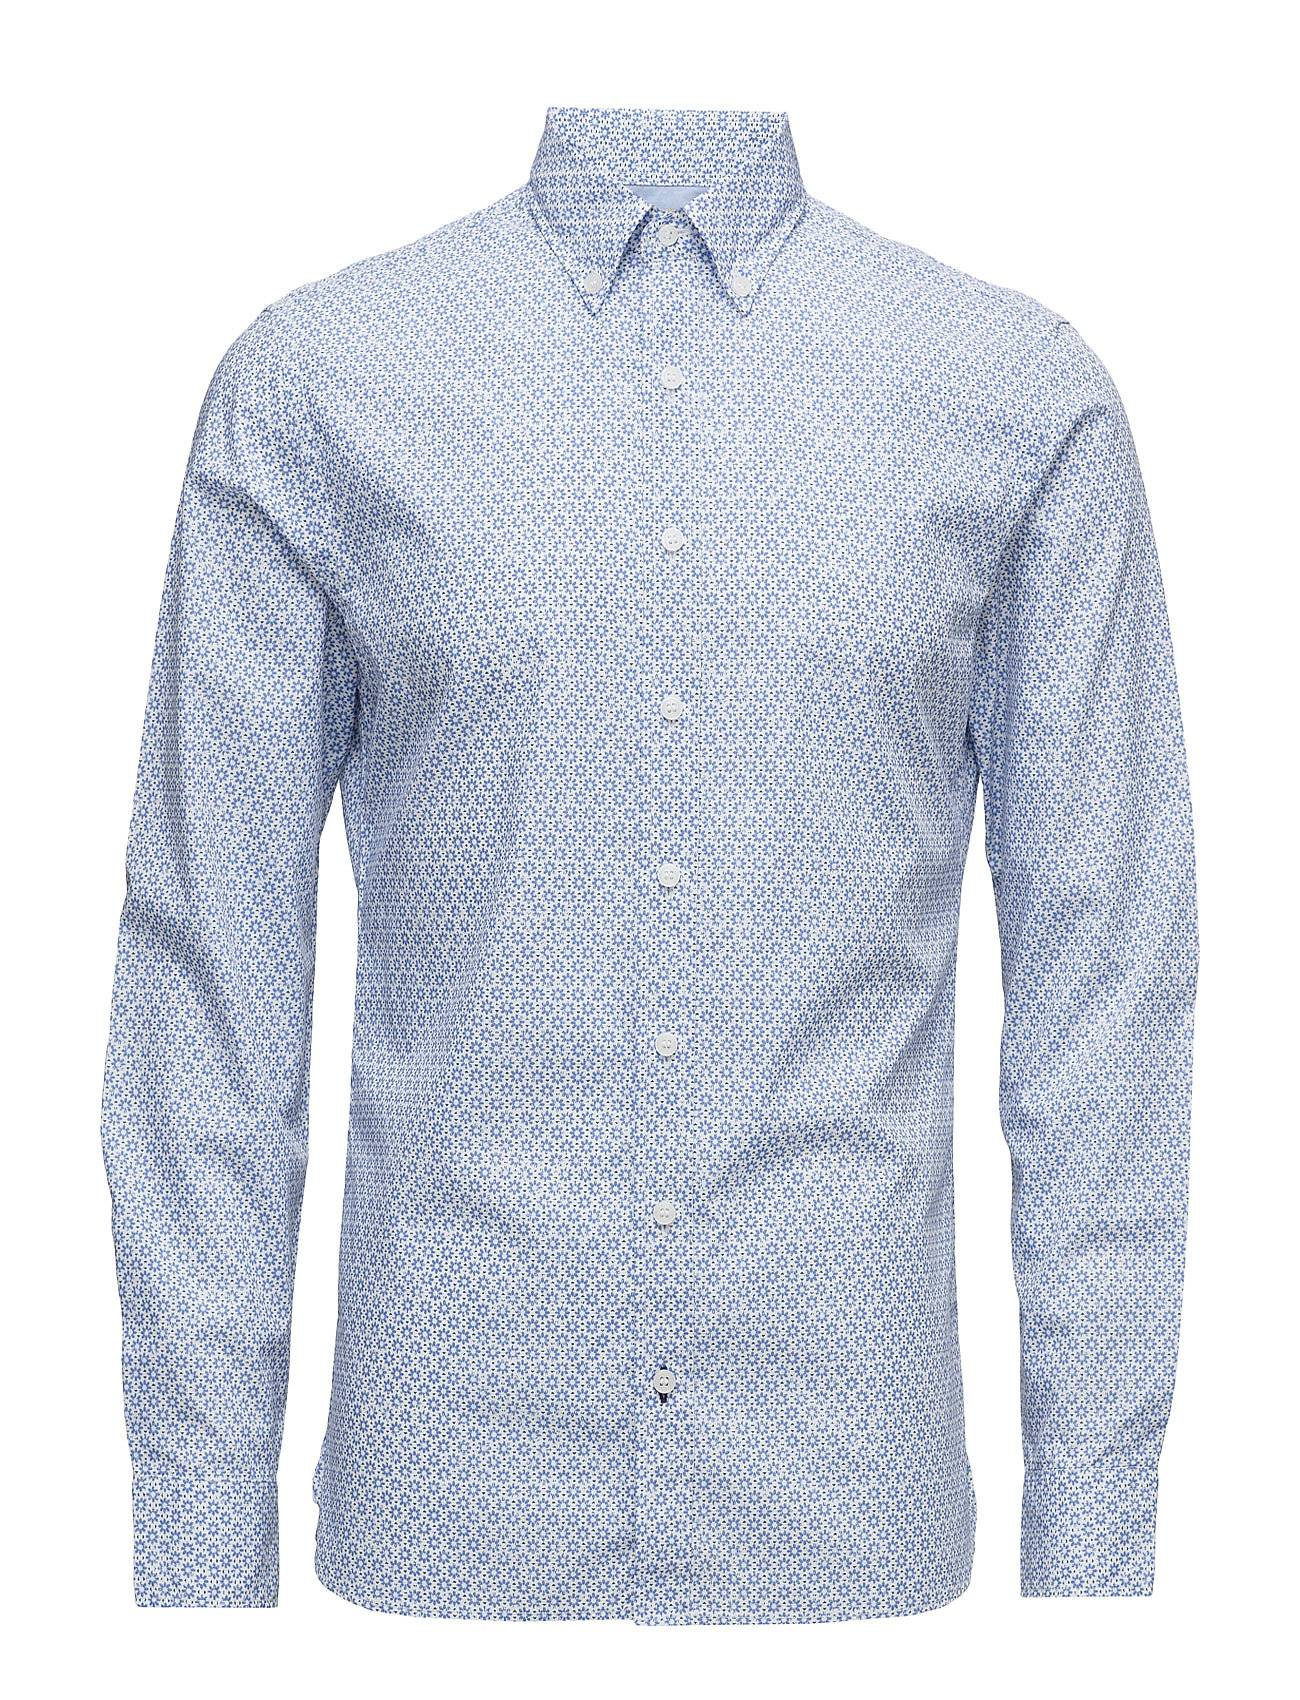 Mango Man Slim-Fit Tie Print Shirt